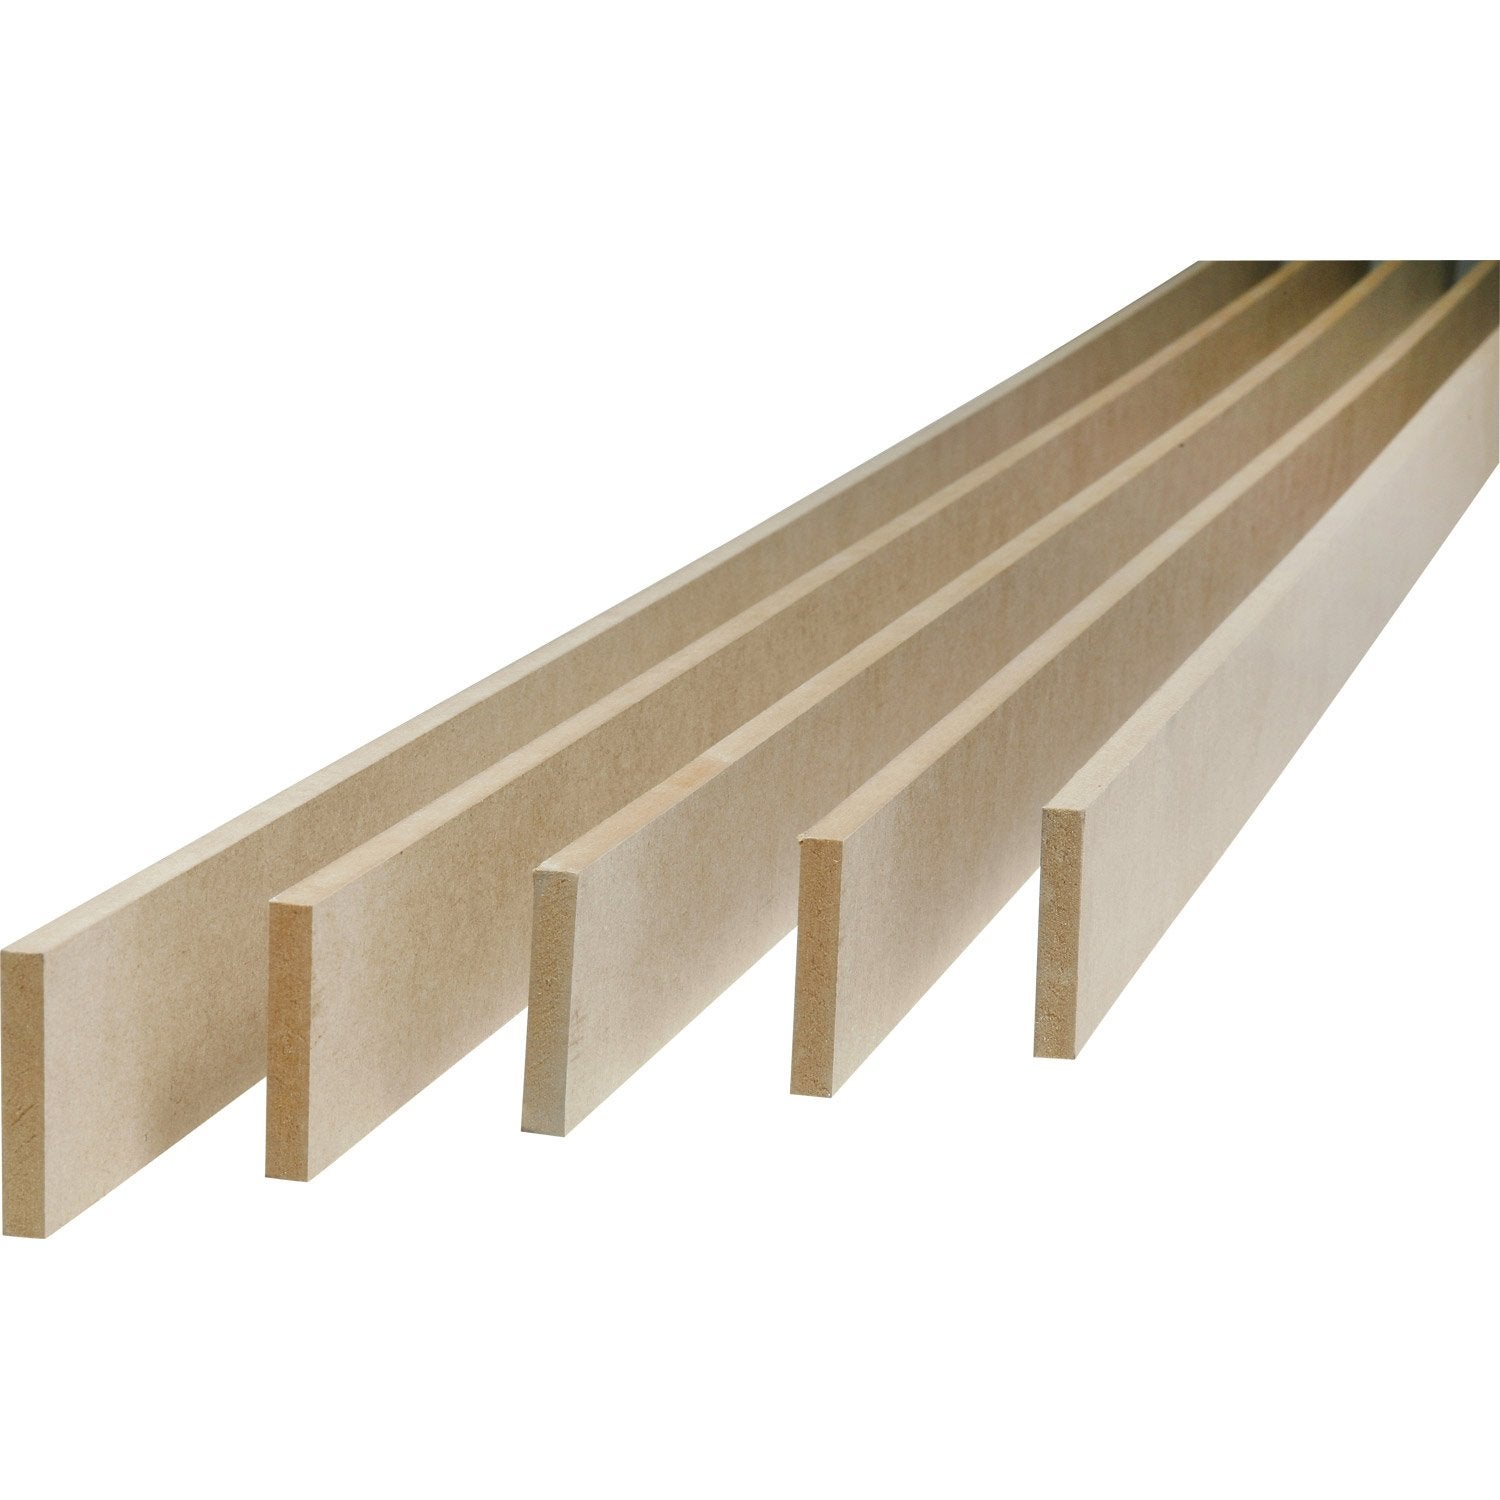 Lot de 5 plinthes médium (MDF) réversibles, 9 x 100 mm, L 2 m Leroy Merlin # Plinthe En Bois Leroy Merlin